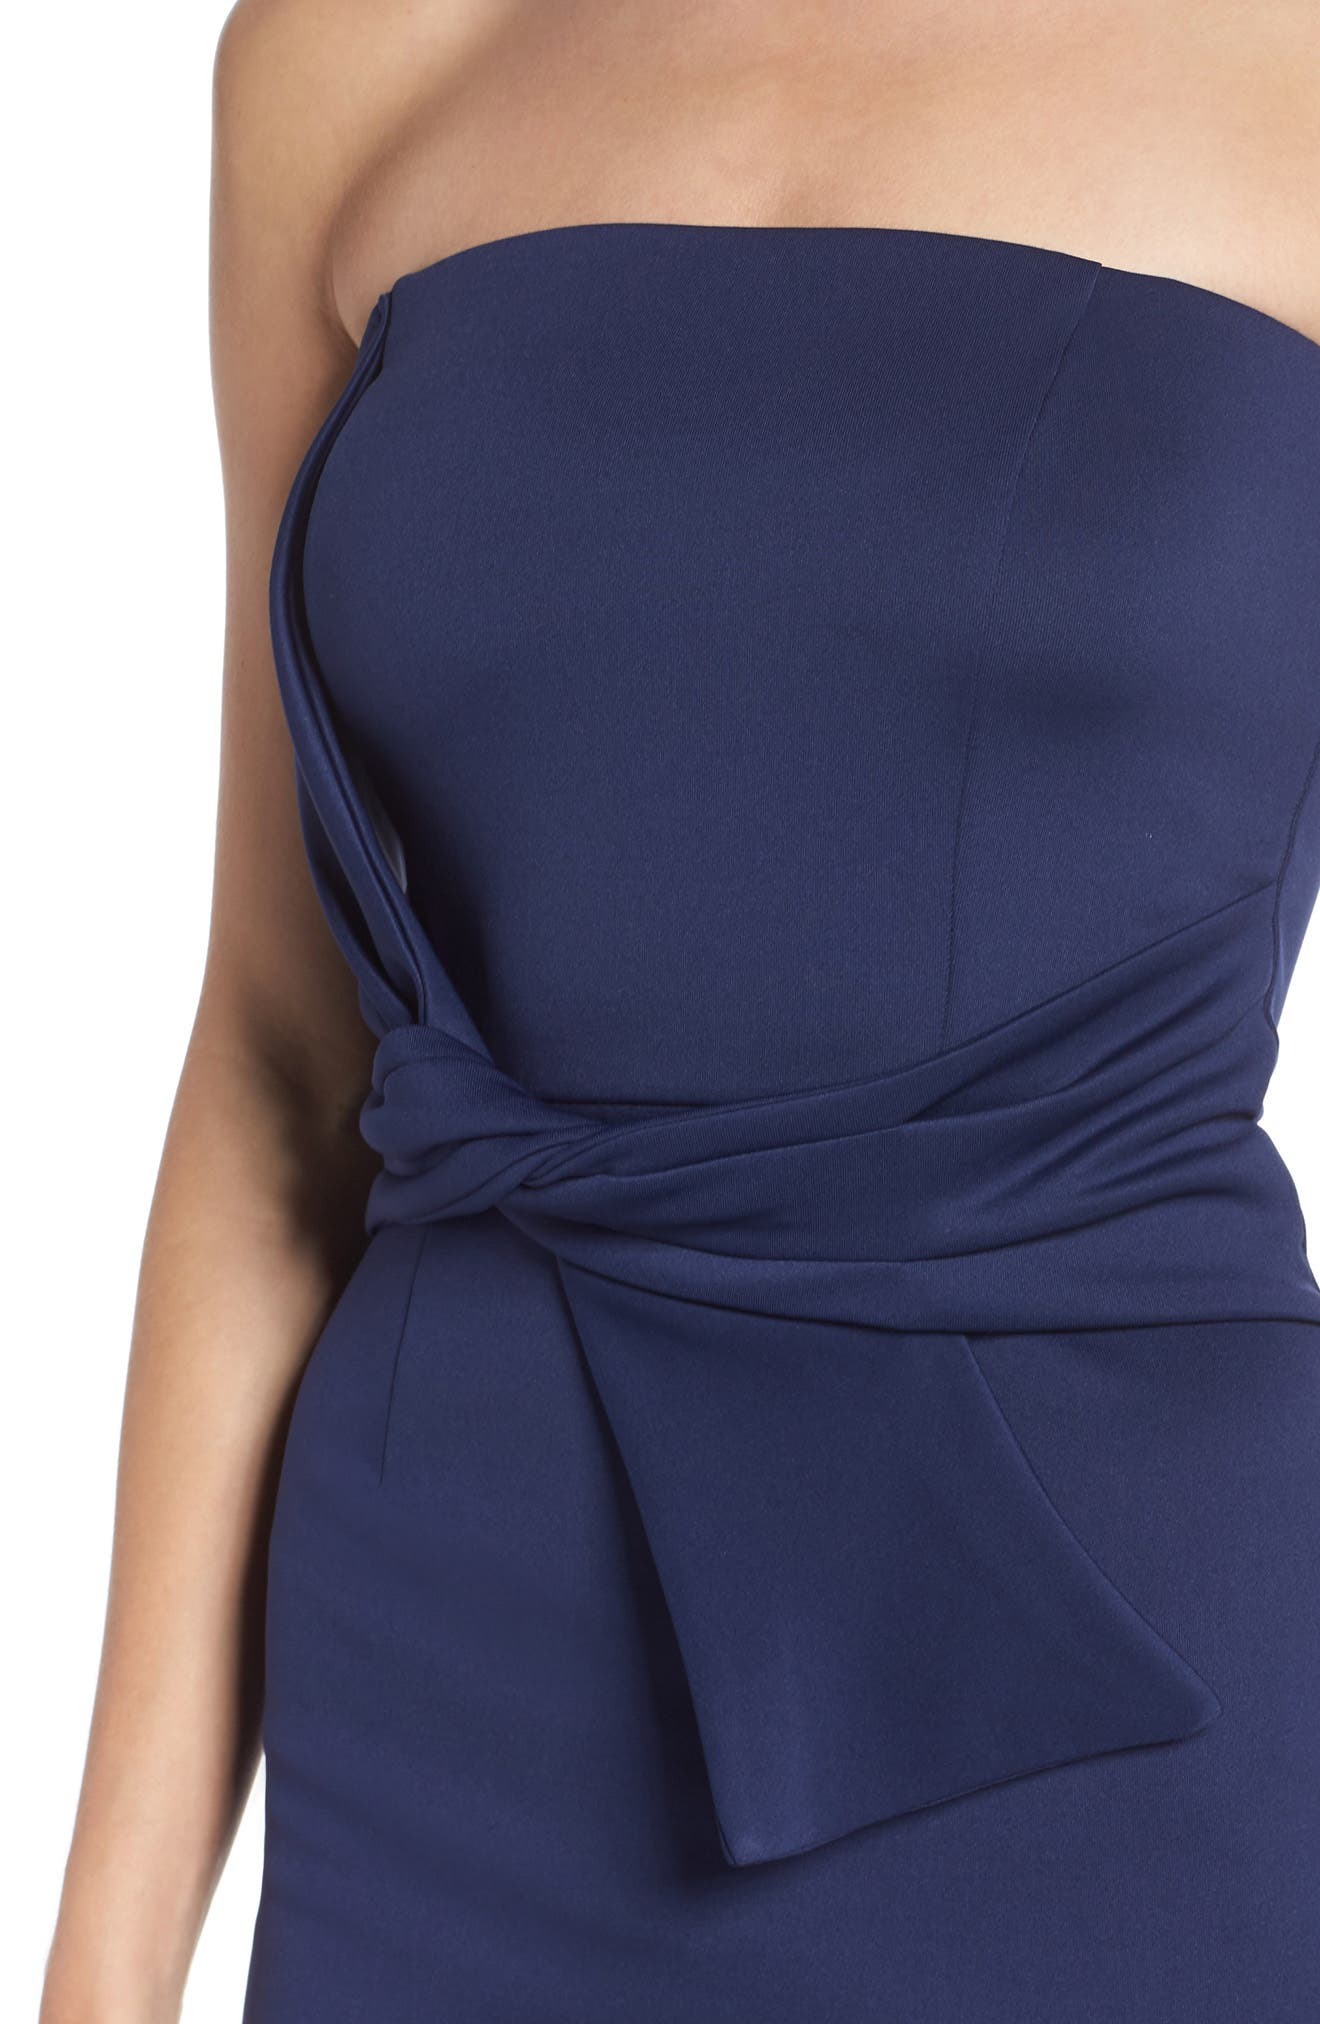 Strapless Tie Front Sheath Dress,                             Alternate thumbnail 4, color,                             Navy